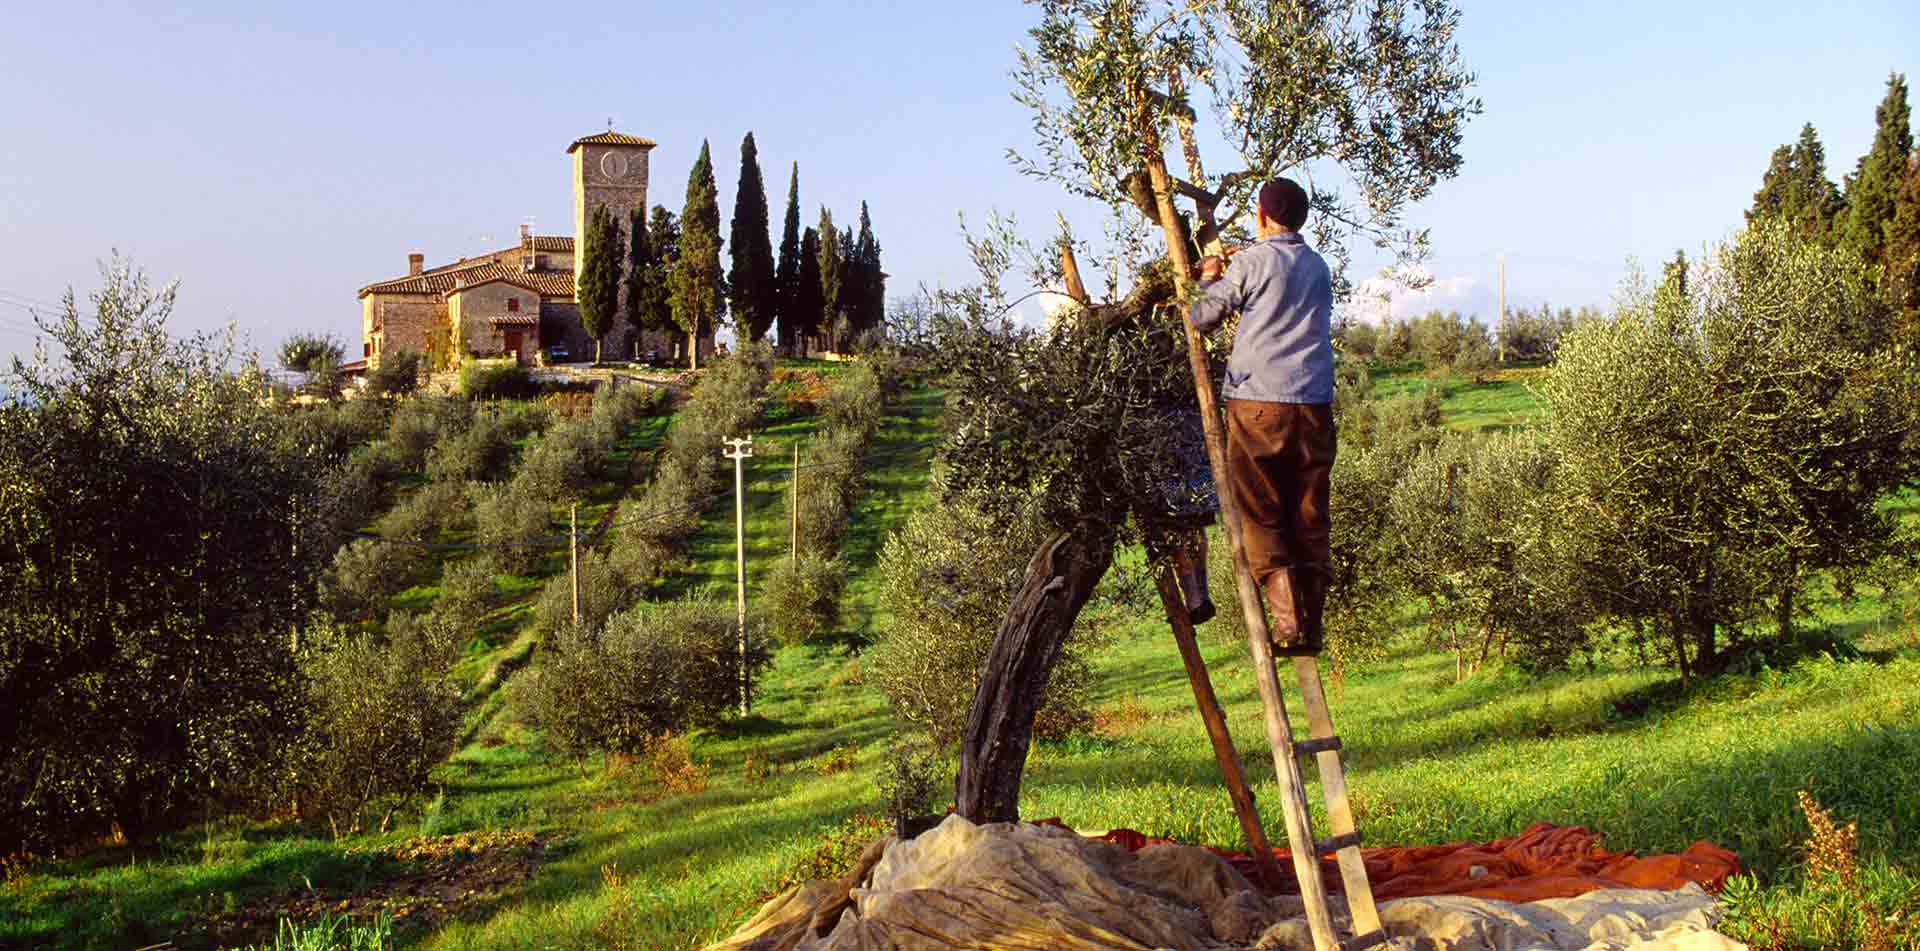 Man on ladder in Italy